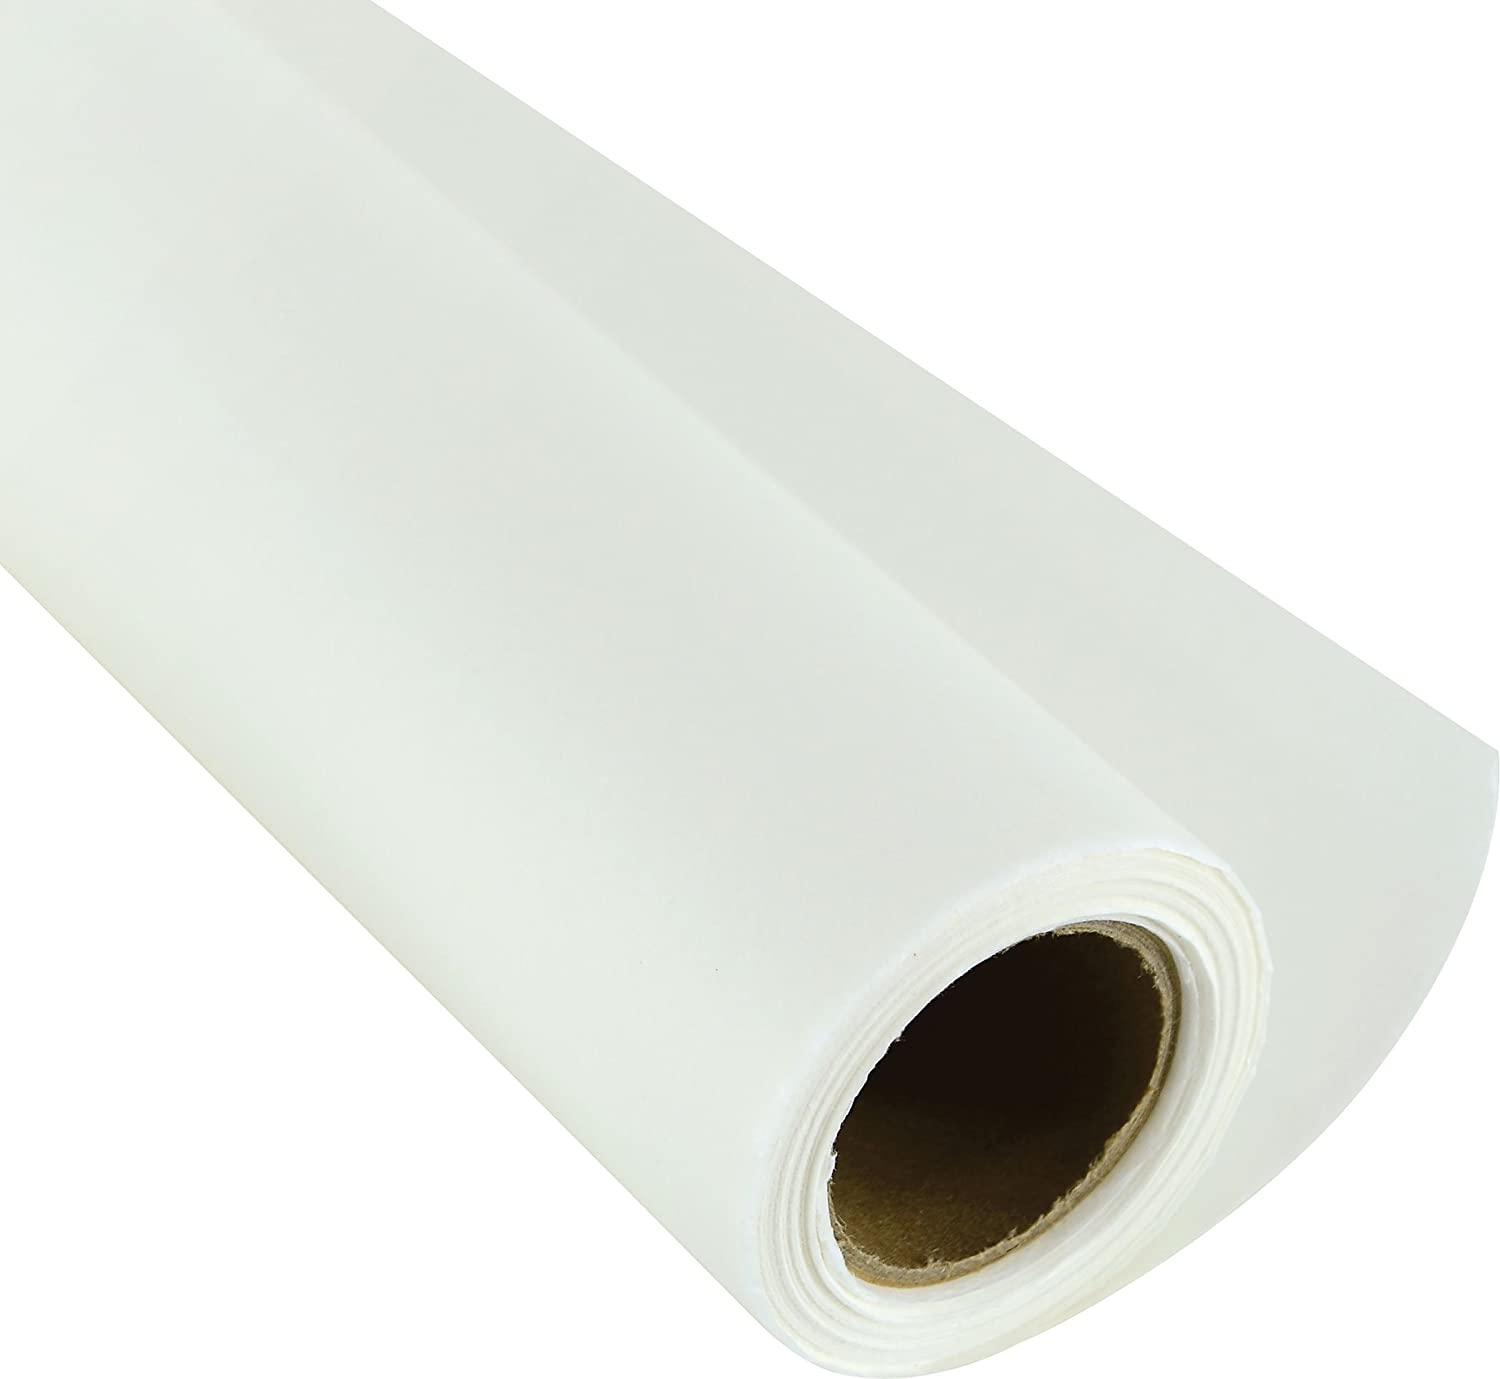 trace paper Wax free transfer paper (also known as graphite paper or tracing paper) made for general and specialized use that allows you to transfer your design from a sketch.